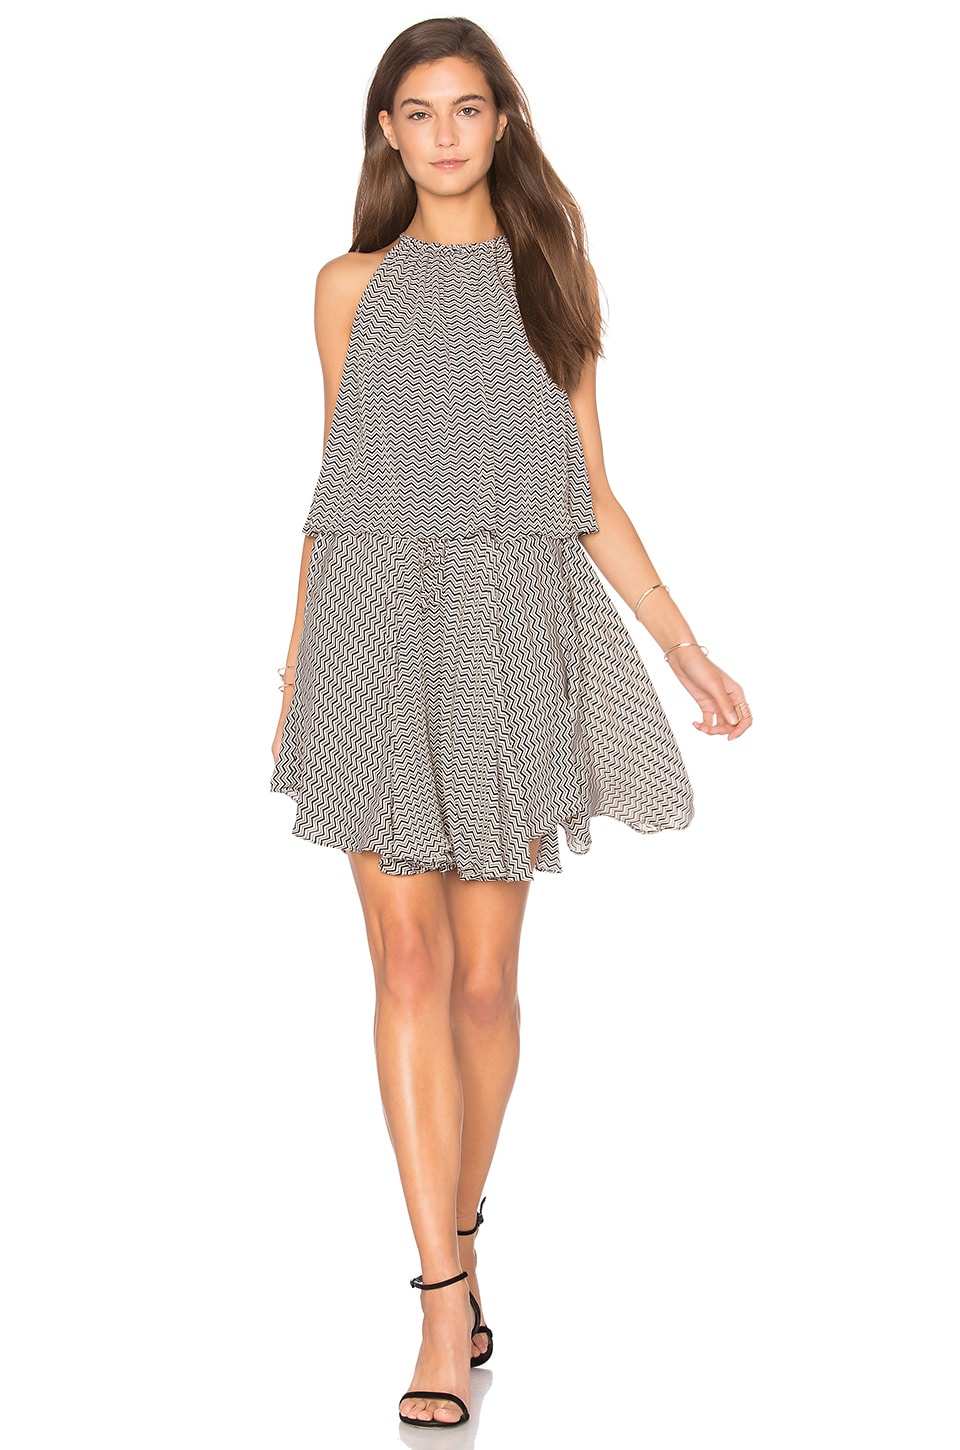 Etienne Layered High Neck Mini Dress